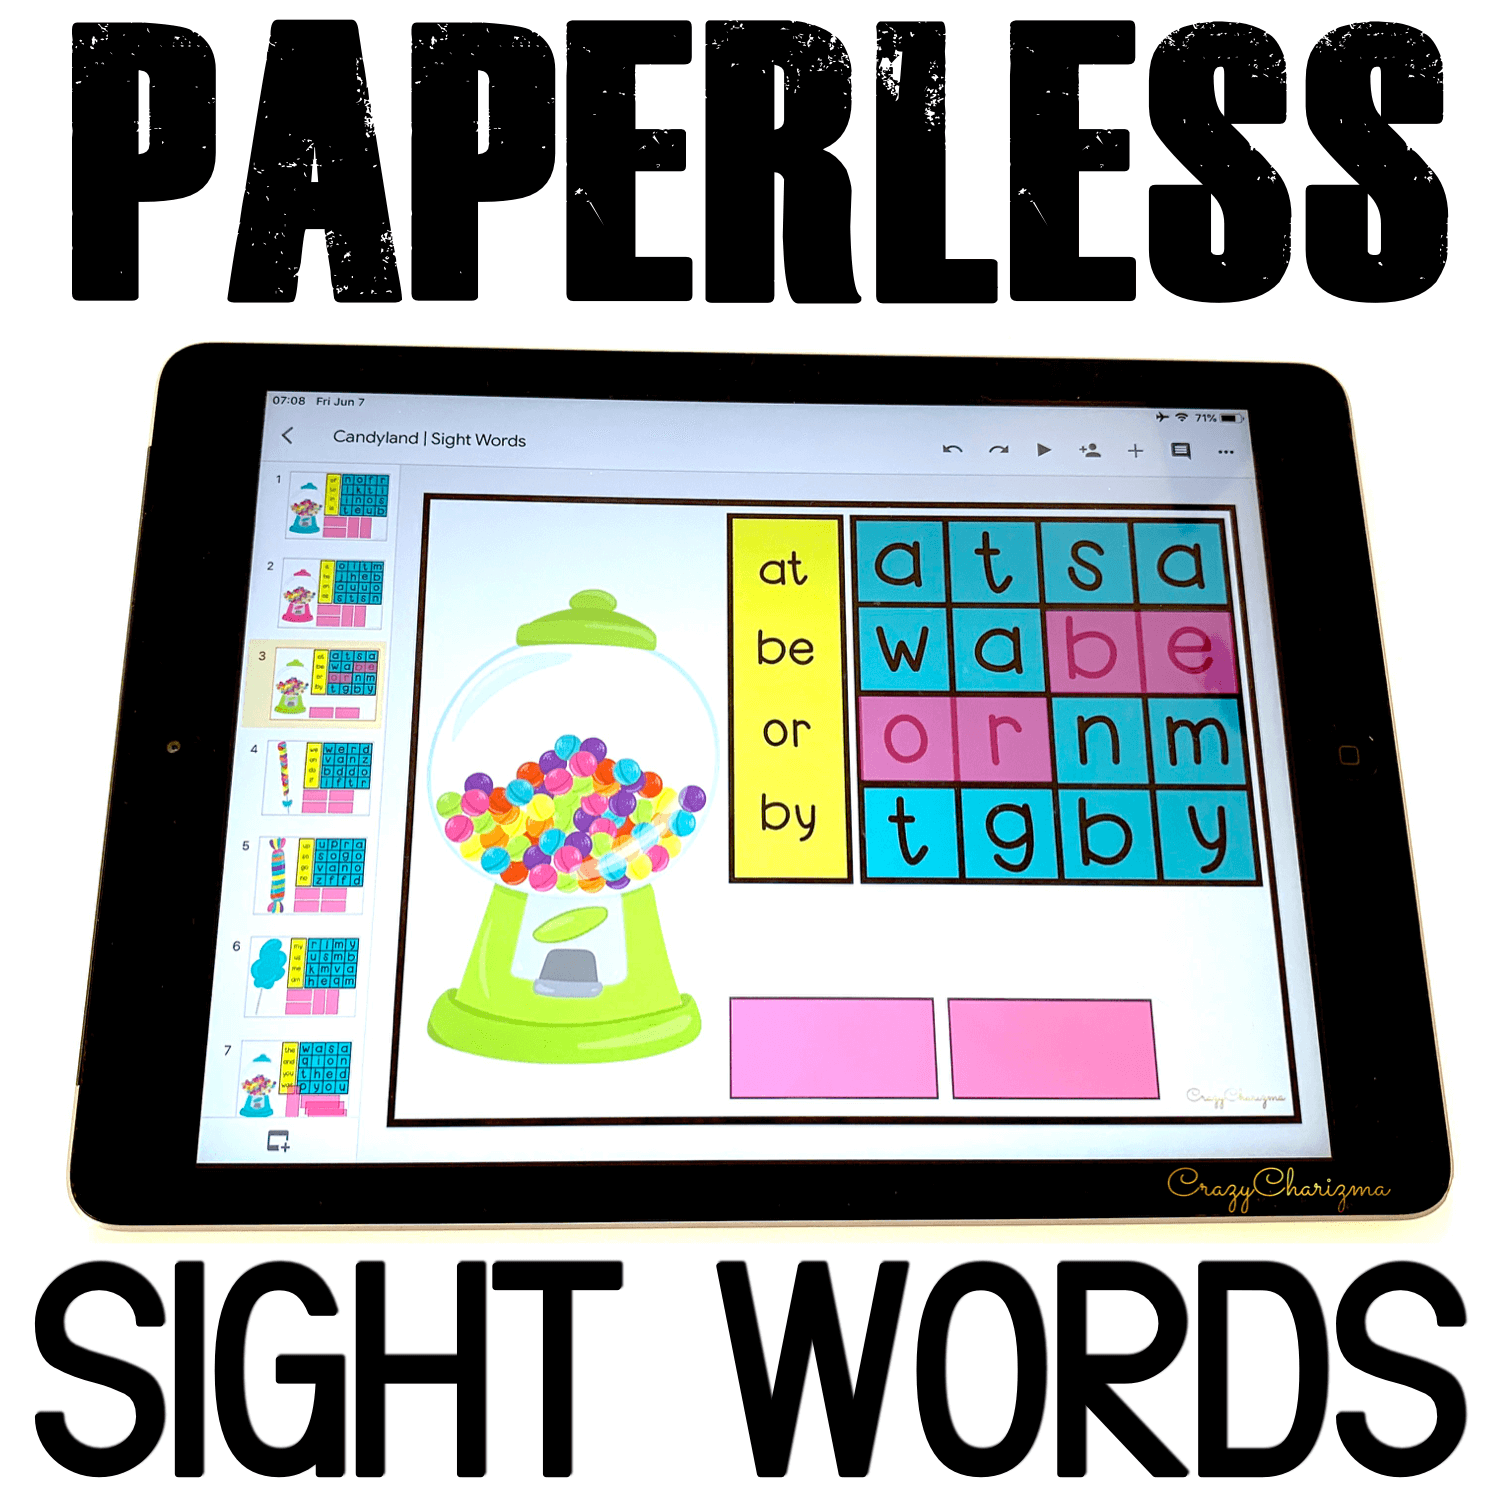 Your students love word searches? Use them to teach sight words on iPads / Chromebooks / laptops. No print is required in Google Classroom!